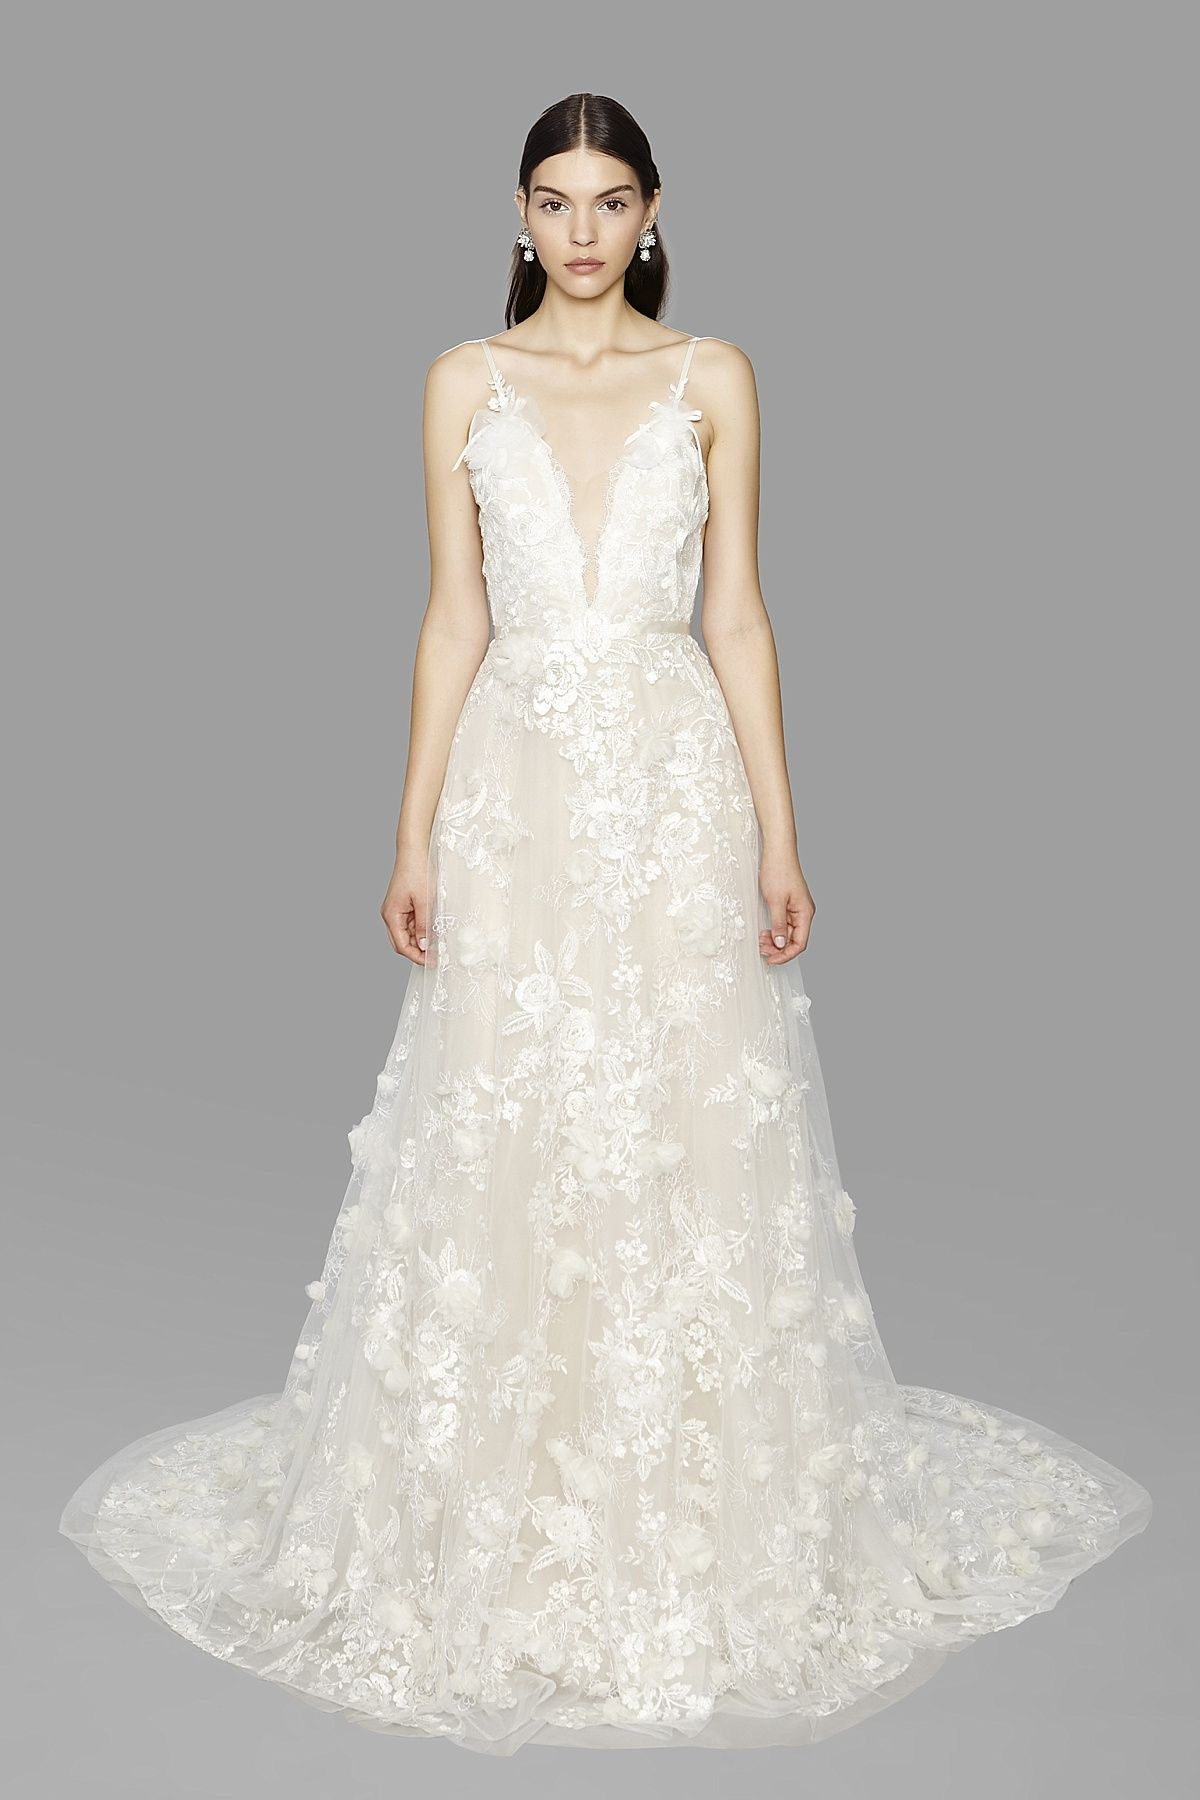 Houston Wedding Dresses & Bridal Gowns | Gowns, Bridal gowns and ...